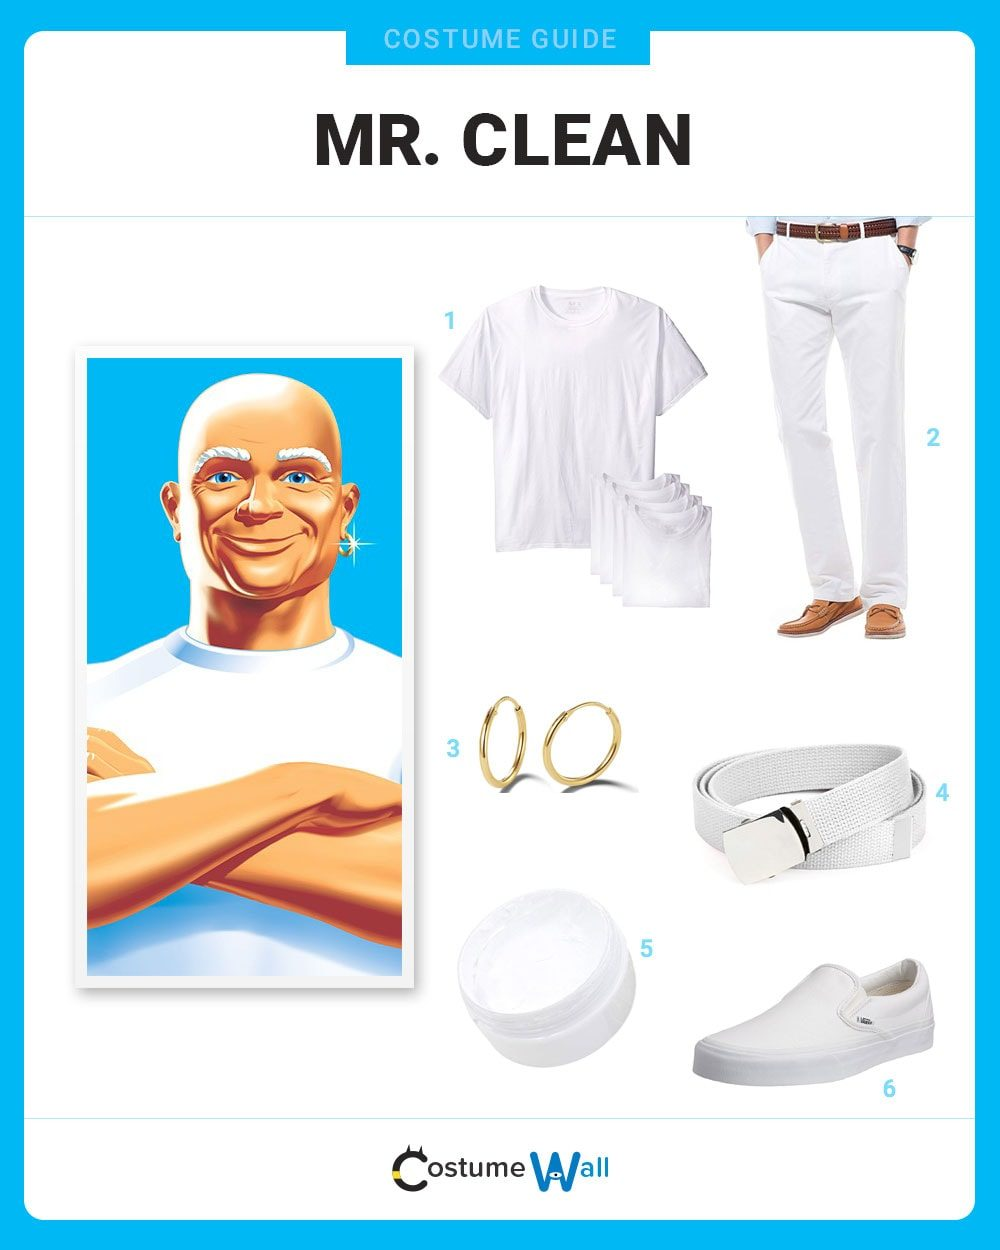 Mr. Clean Costume Guide